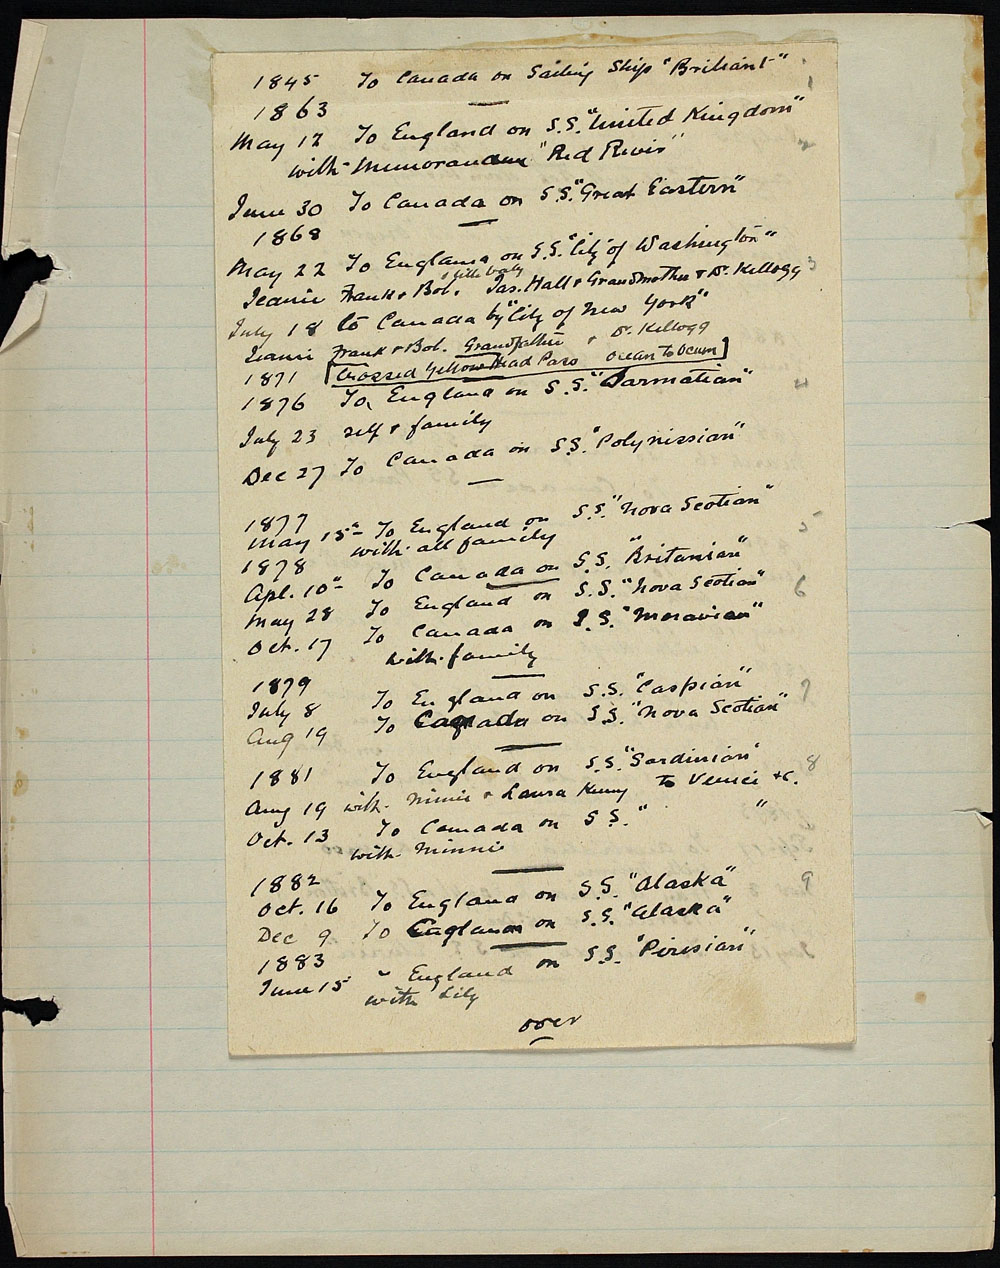 A Handwritten List Of Dates Destinations And Names Ships Which Has Been Attached